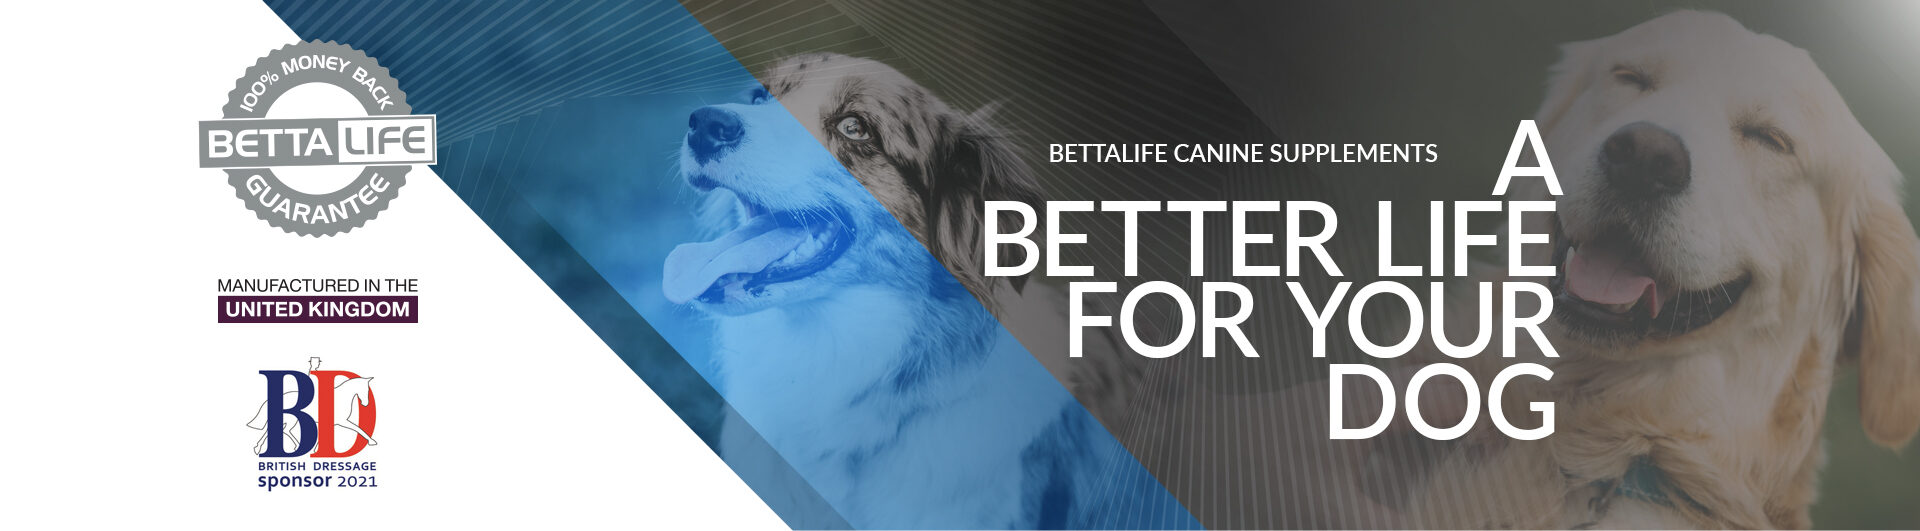 bettalife your your dog banner